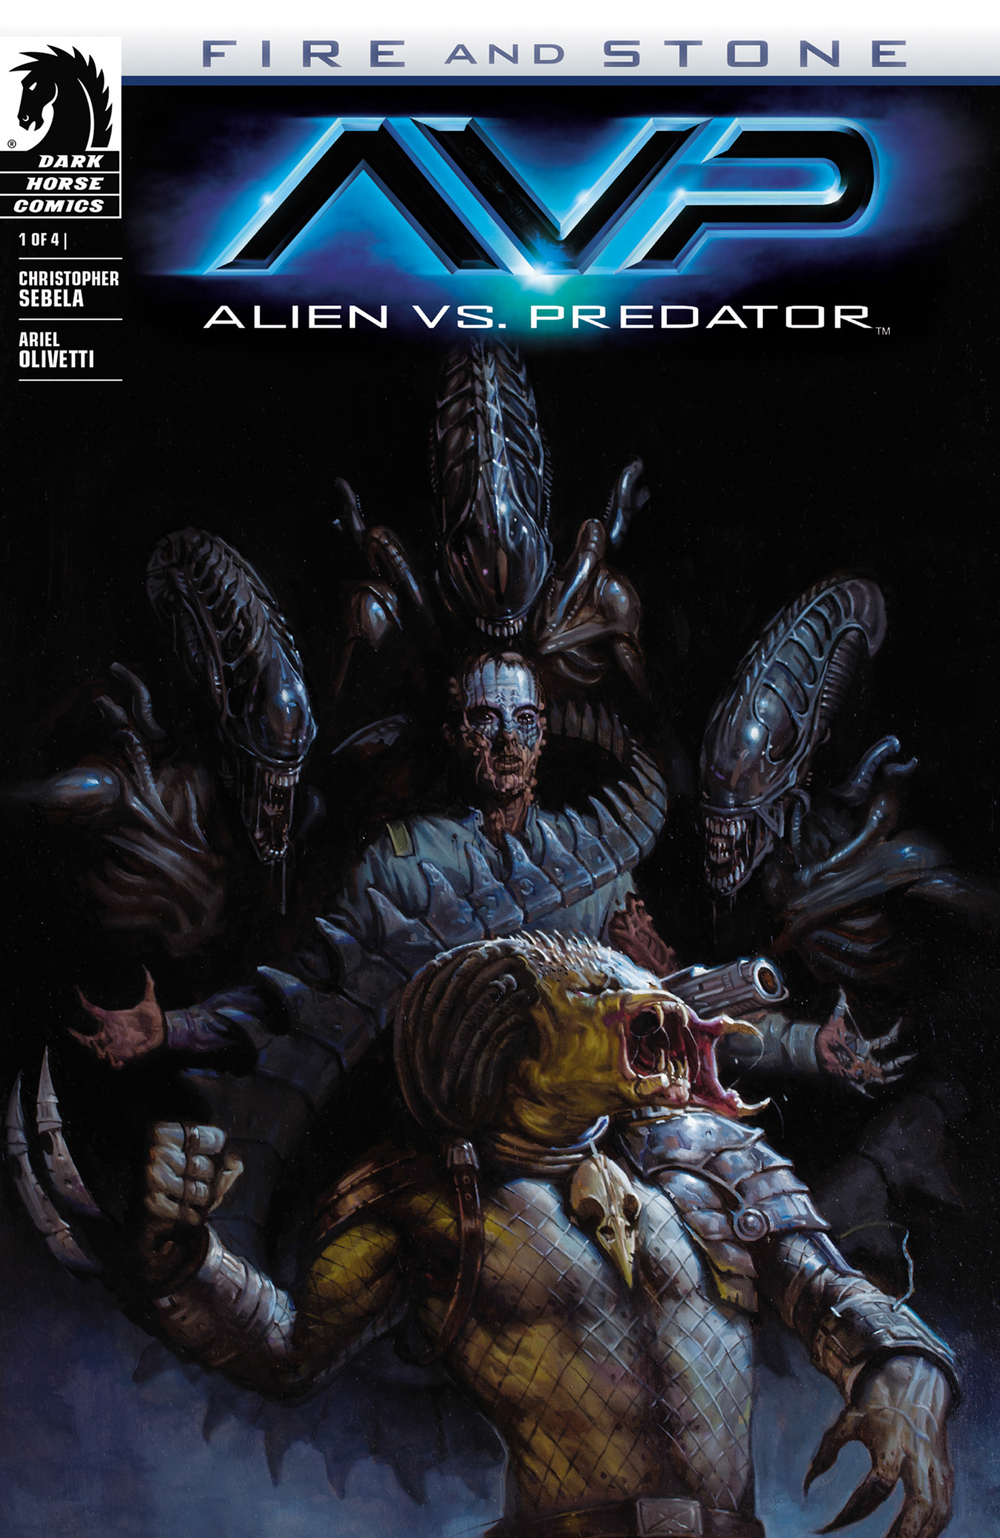 Alien Vs Predator: Fire and Stone #1